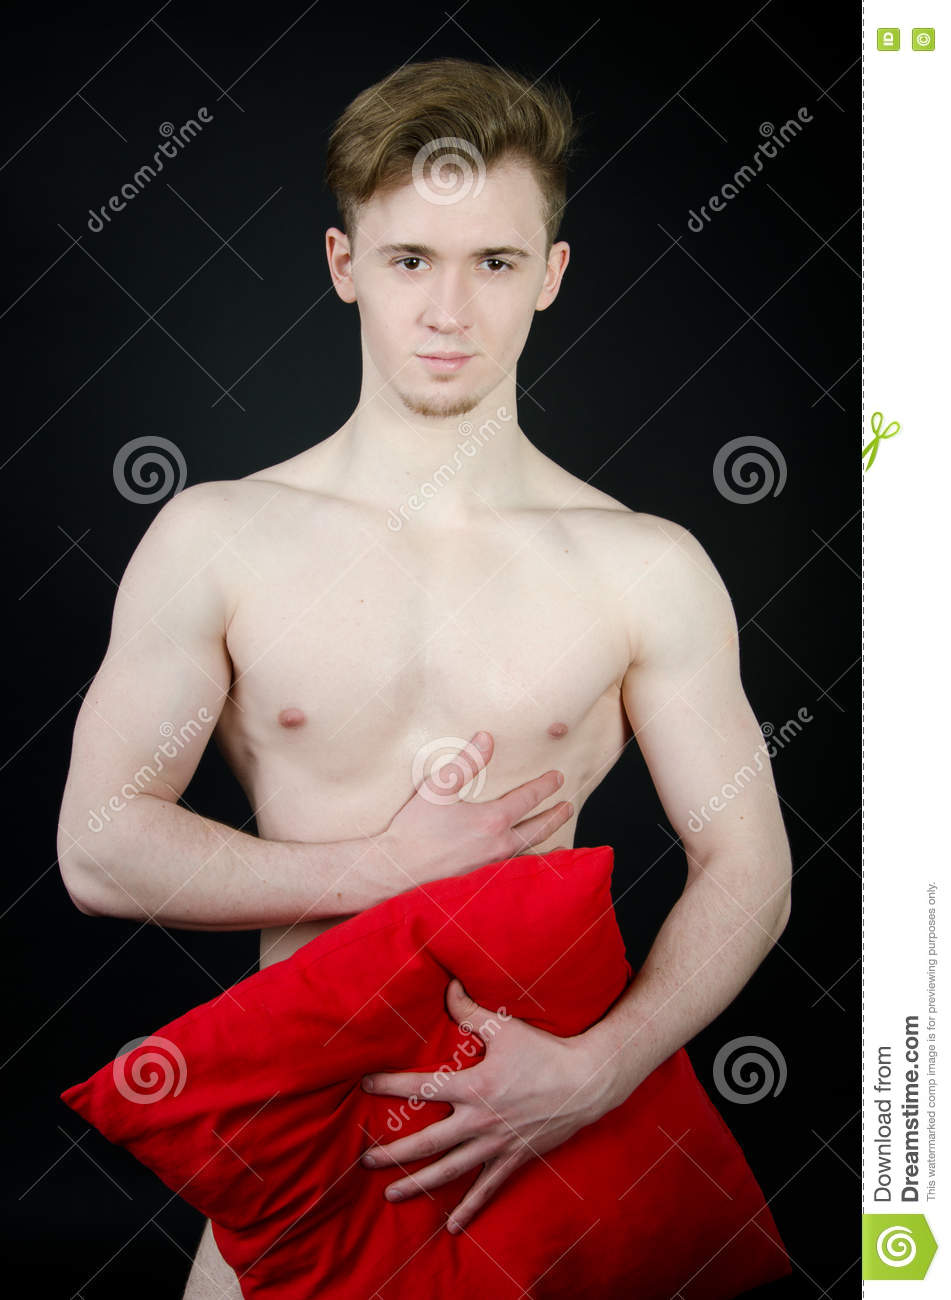 Joey fisher topless